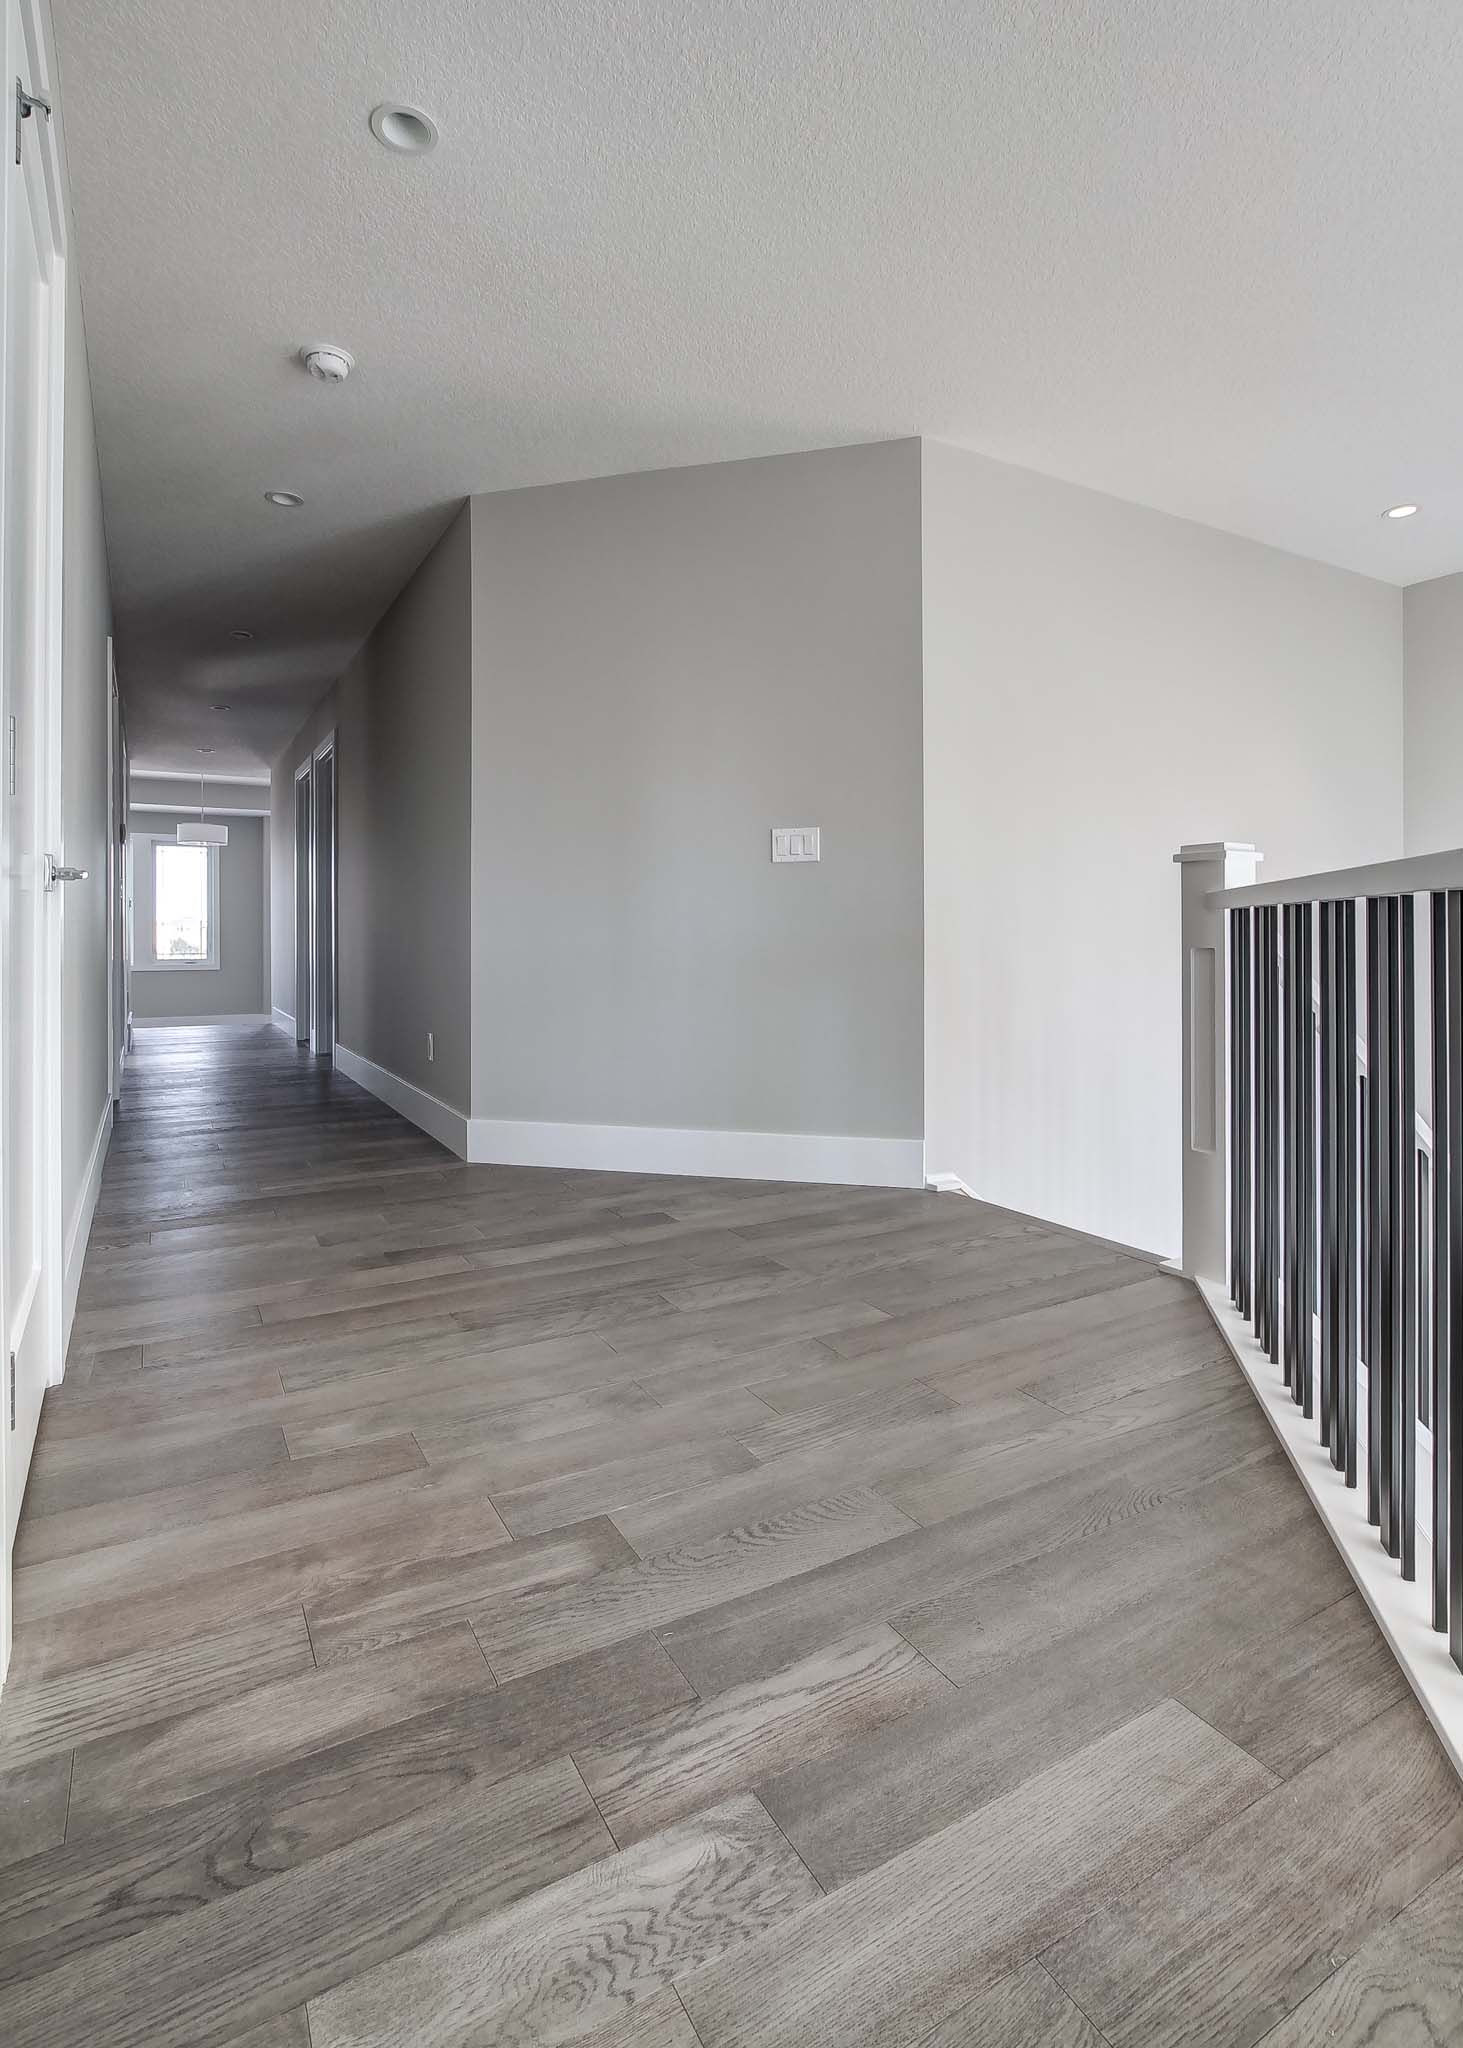 hardwood floor refinishing calgary of west point grove in calgary alberta built by truman flooring in west point grove in calgary alberta built by truman